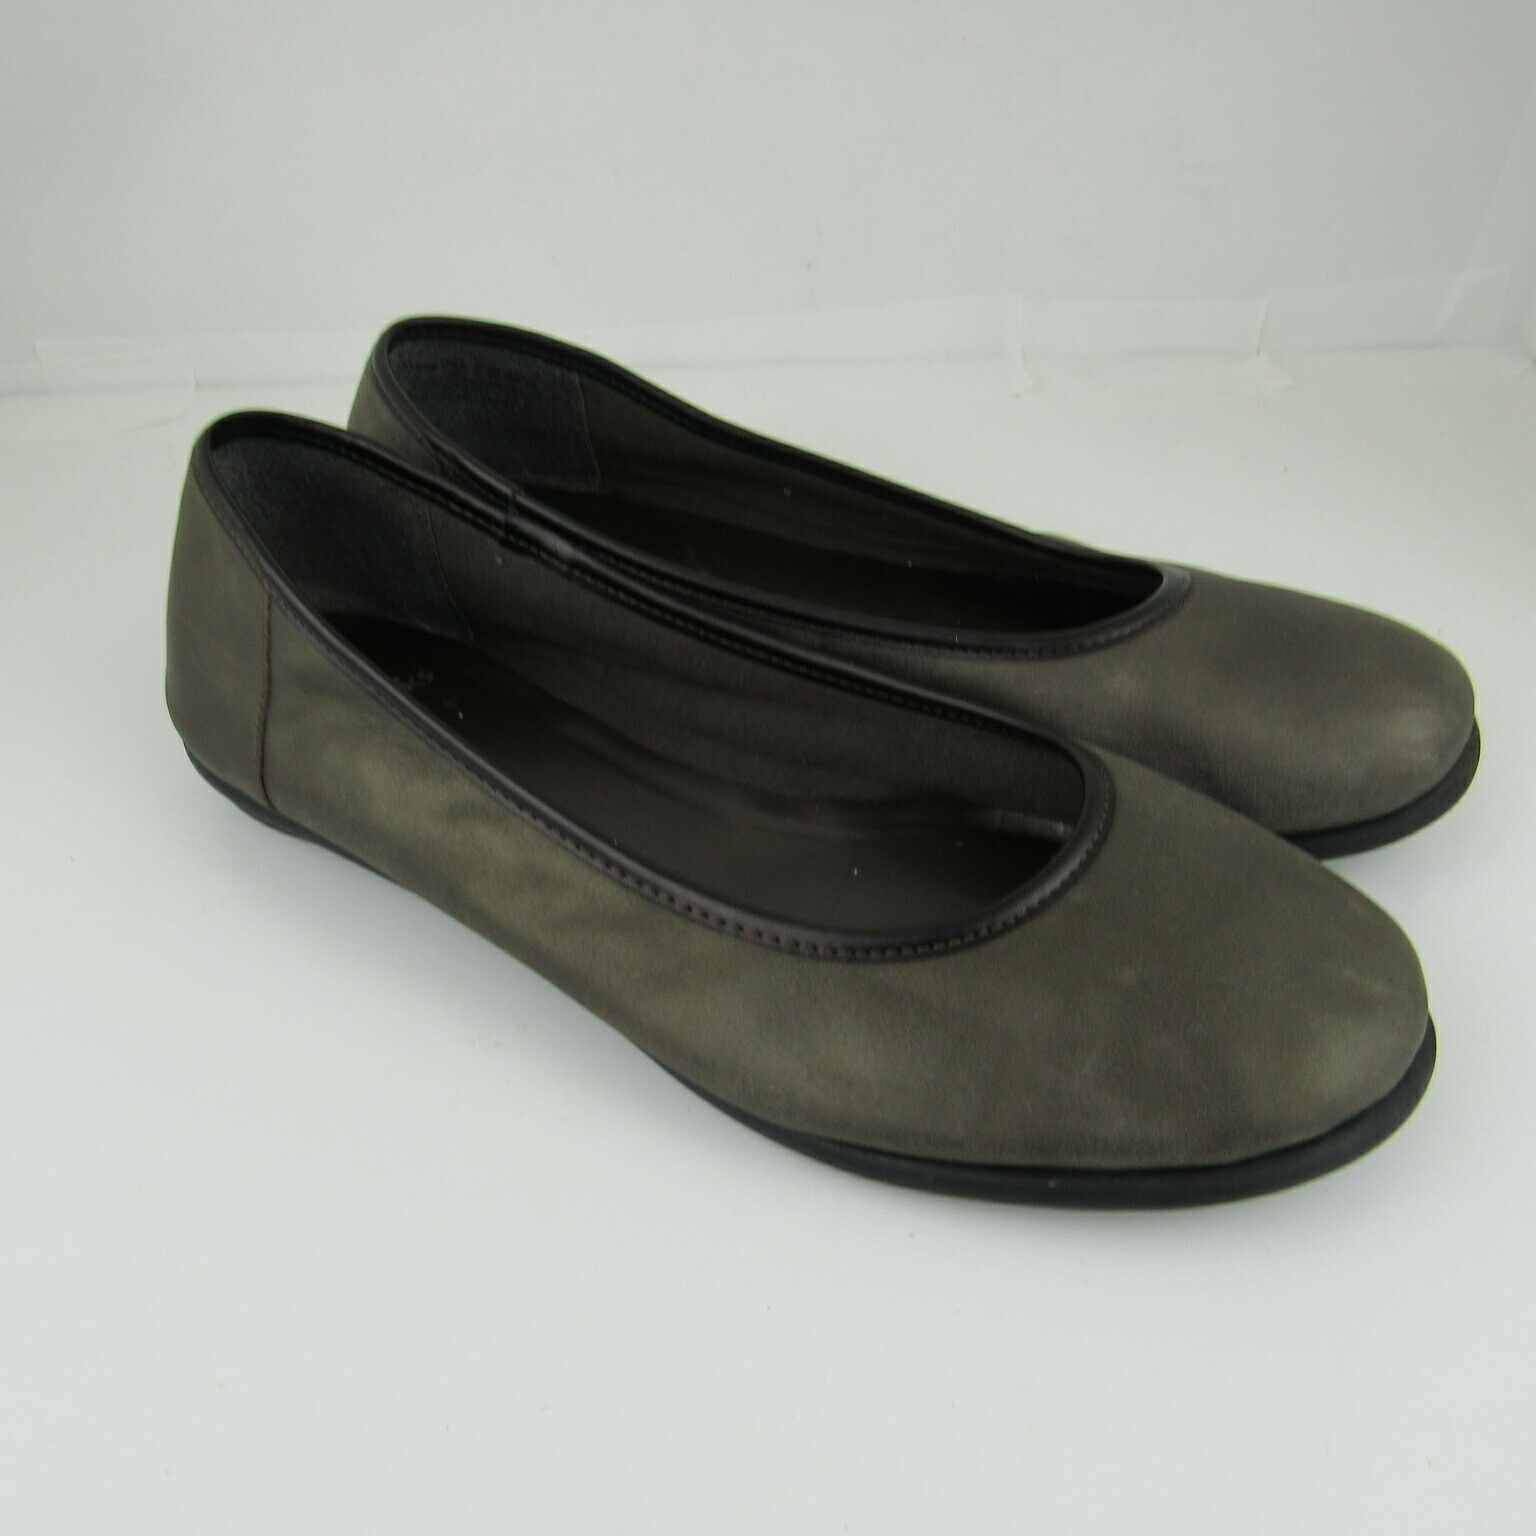 Clarks 9 Womens Ballet Flats Shoes Leather Upper Cushion Soft Slip On Casual